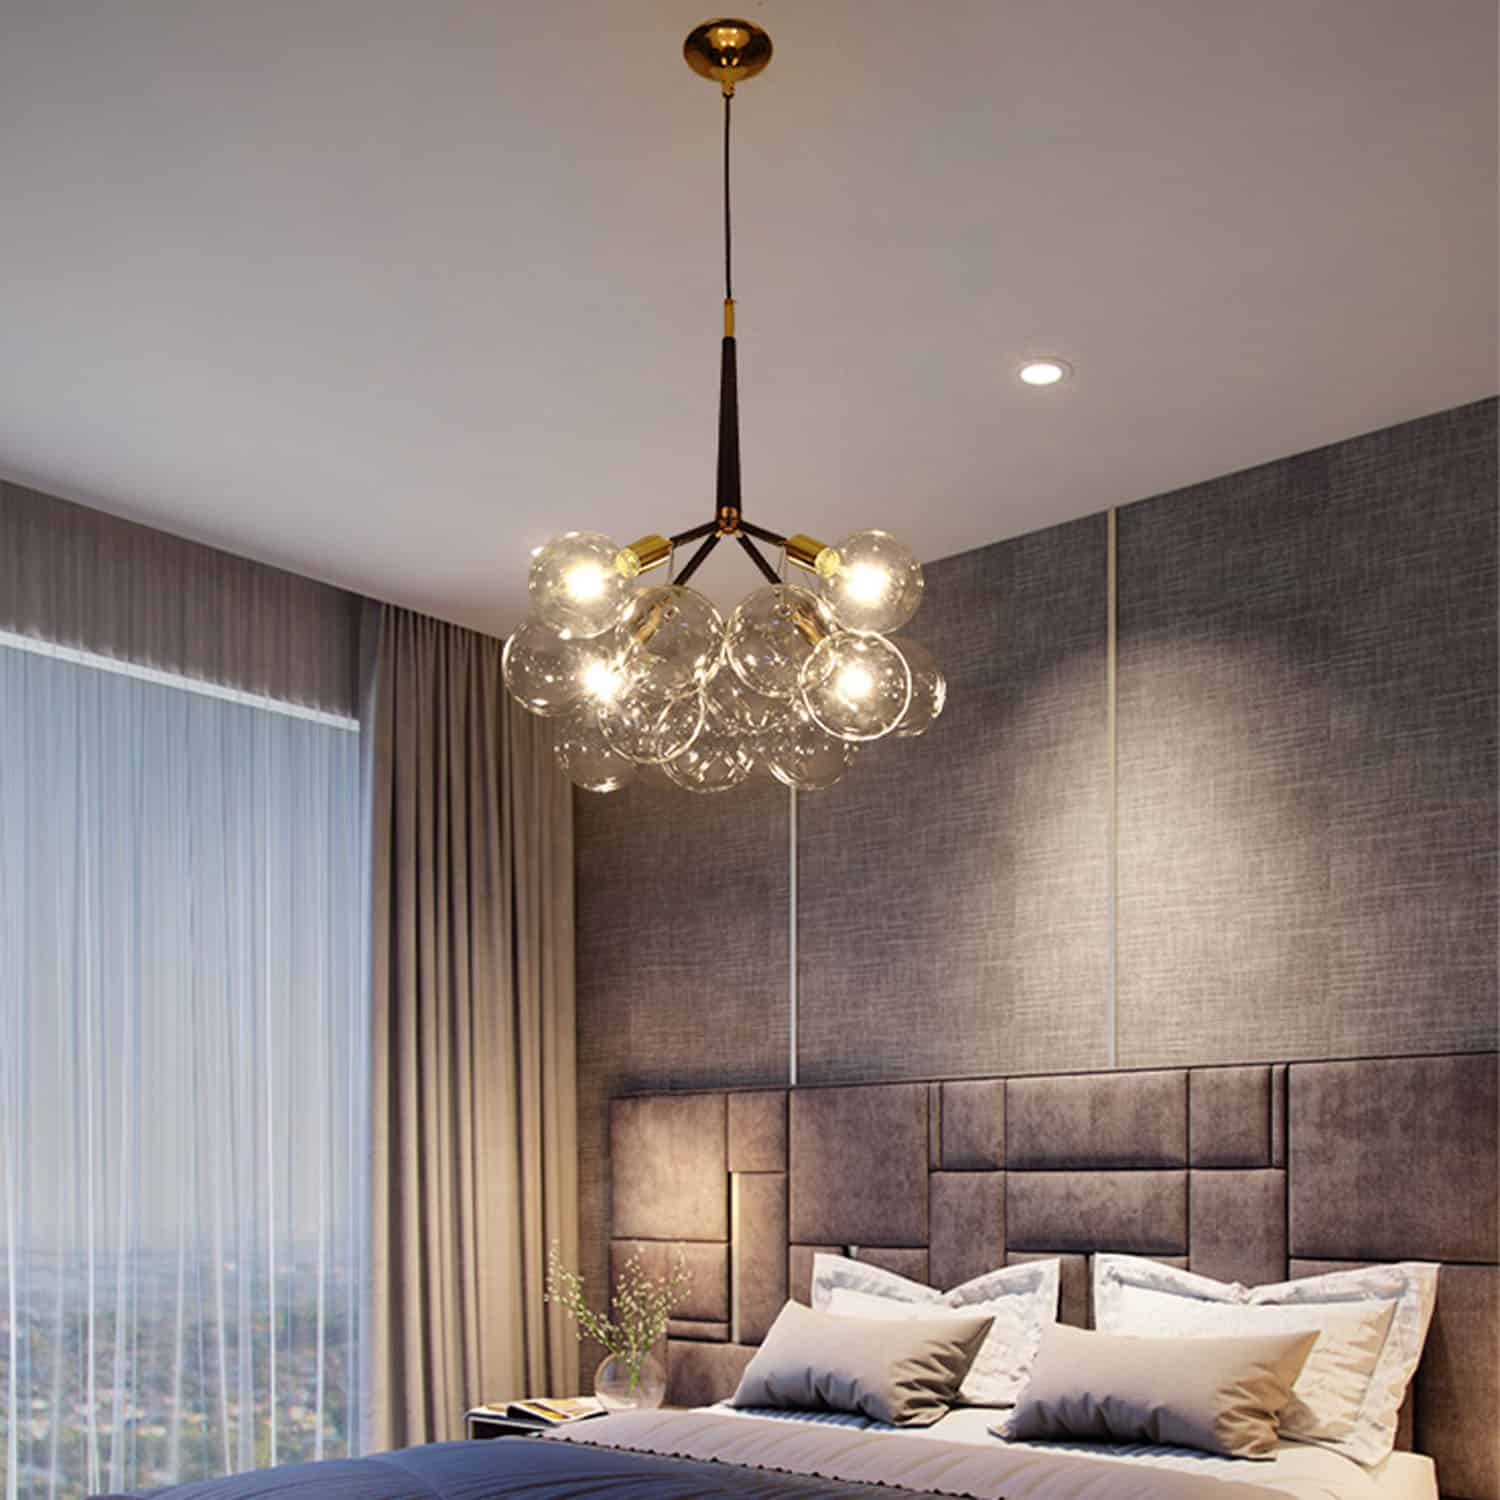 Must Know Lighting Design Trends For 2020 And Beyond Designer Lightings Online Singapore